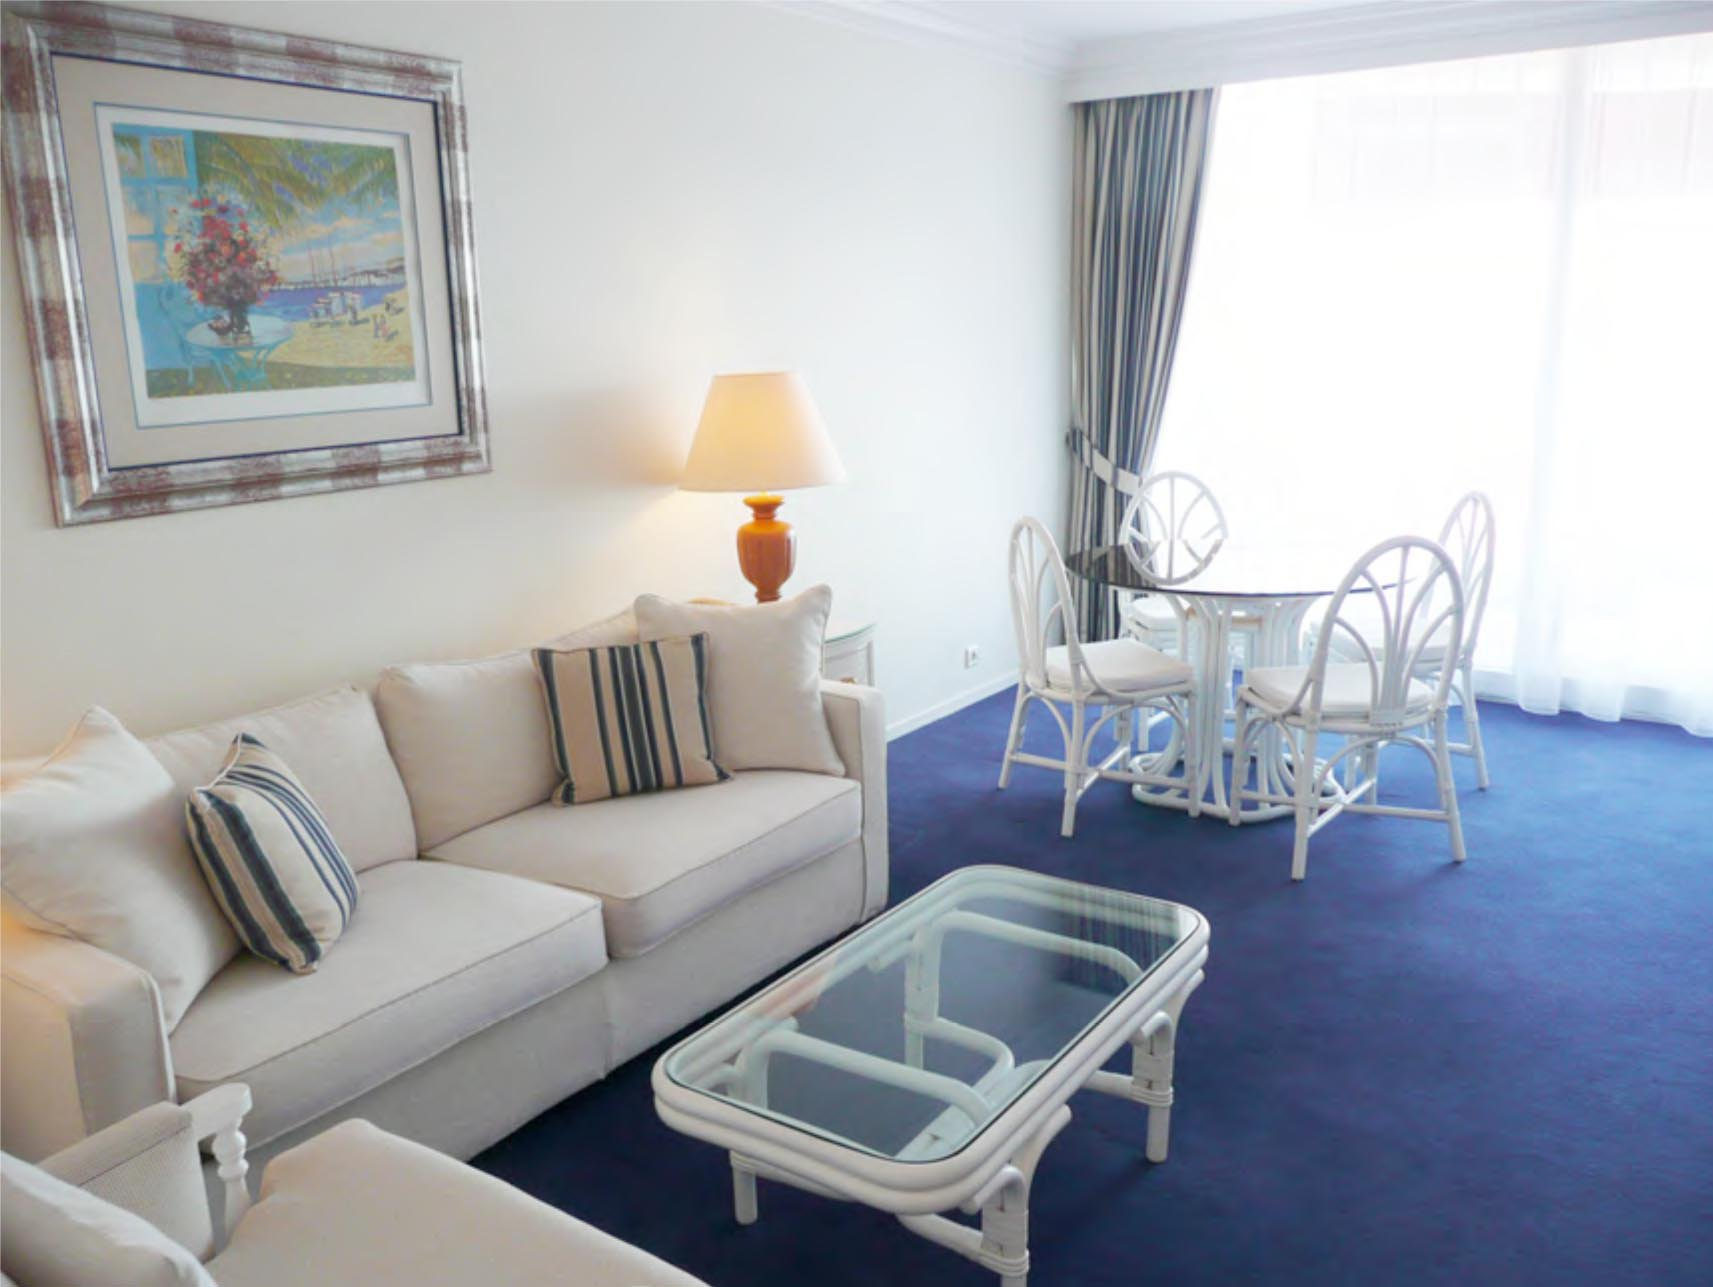 Fairmont Monte Carlo - furnished rentals